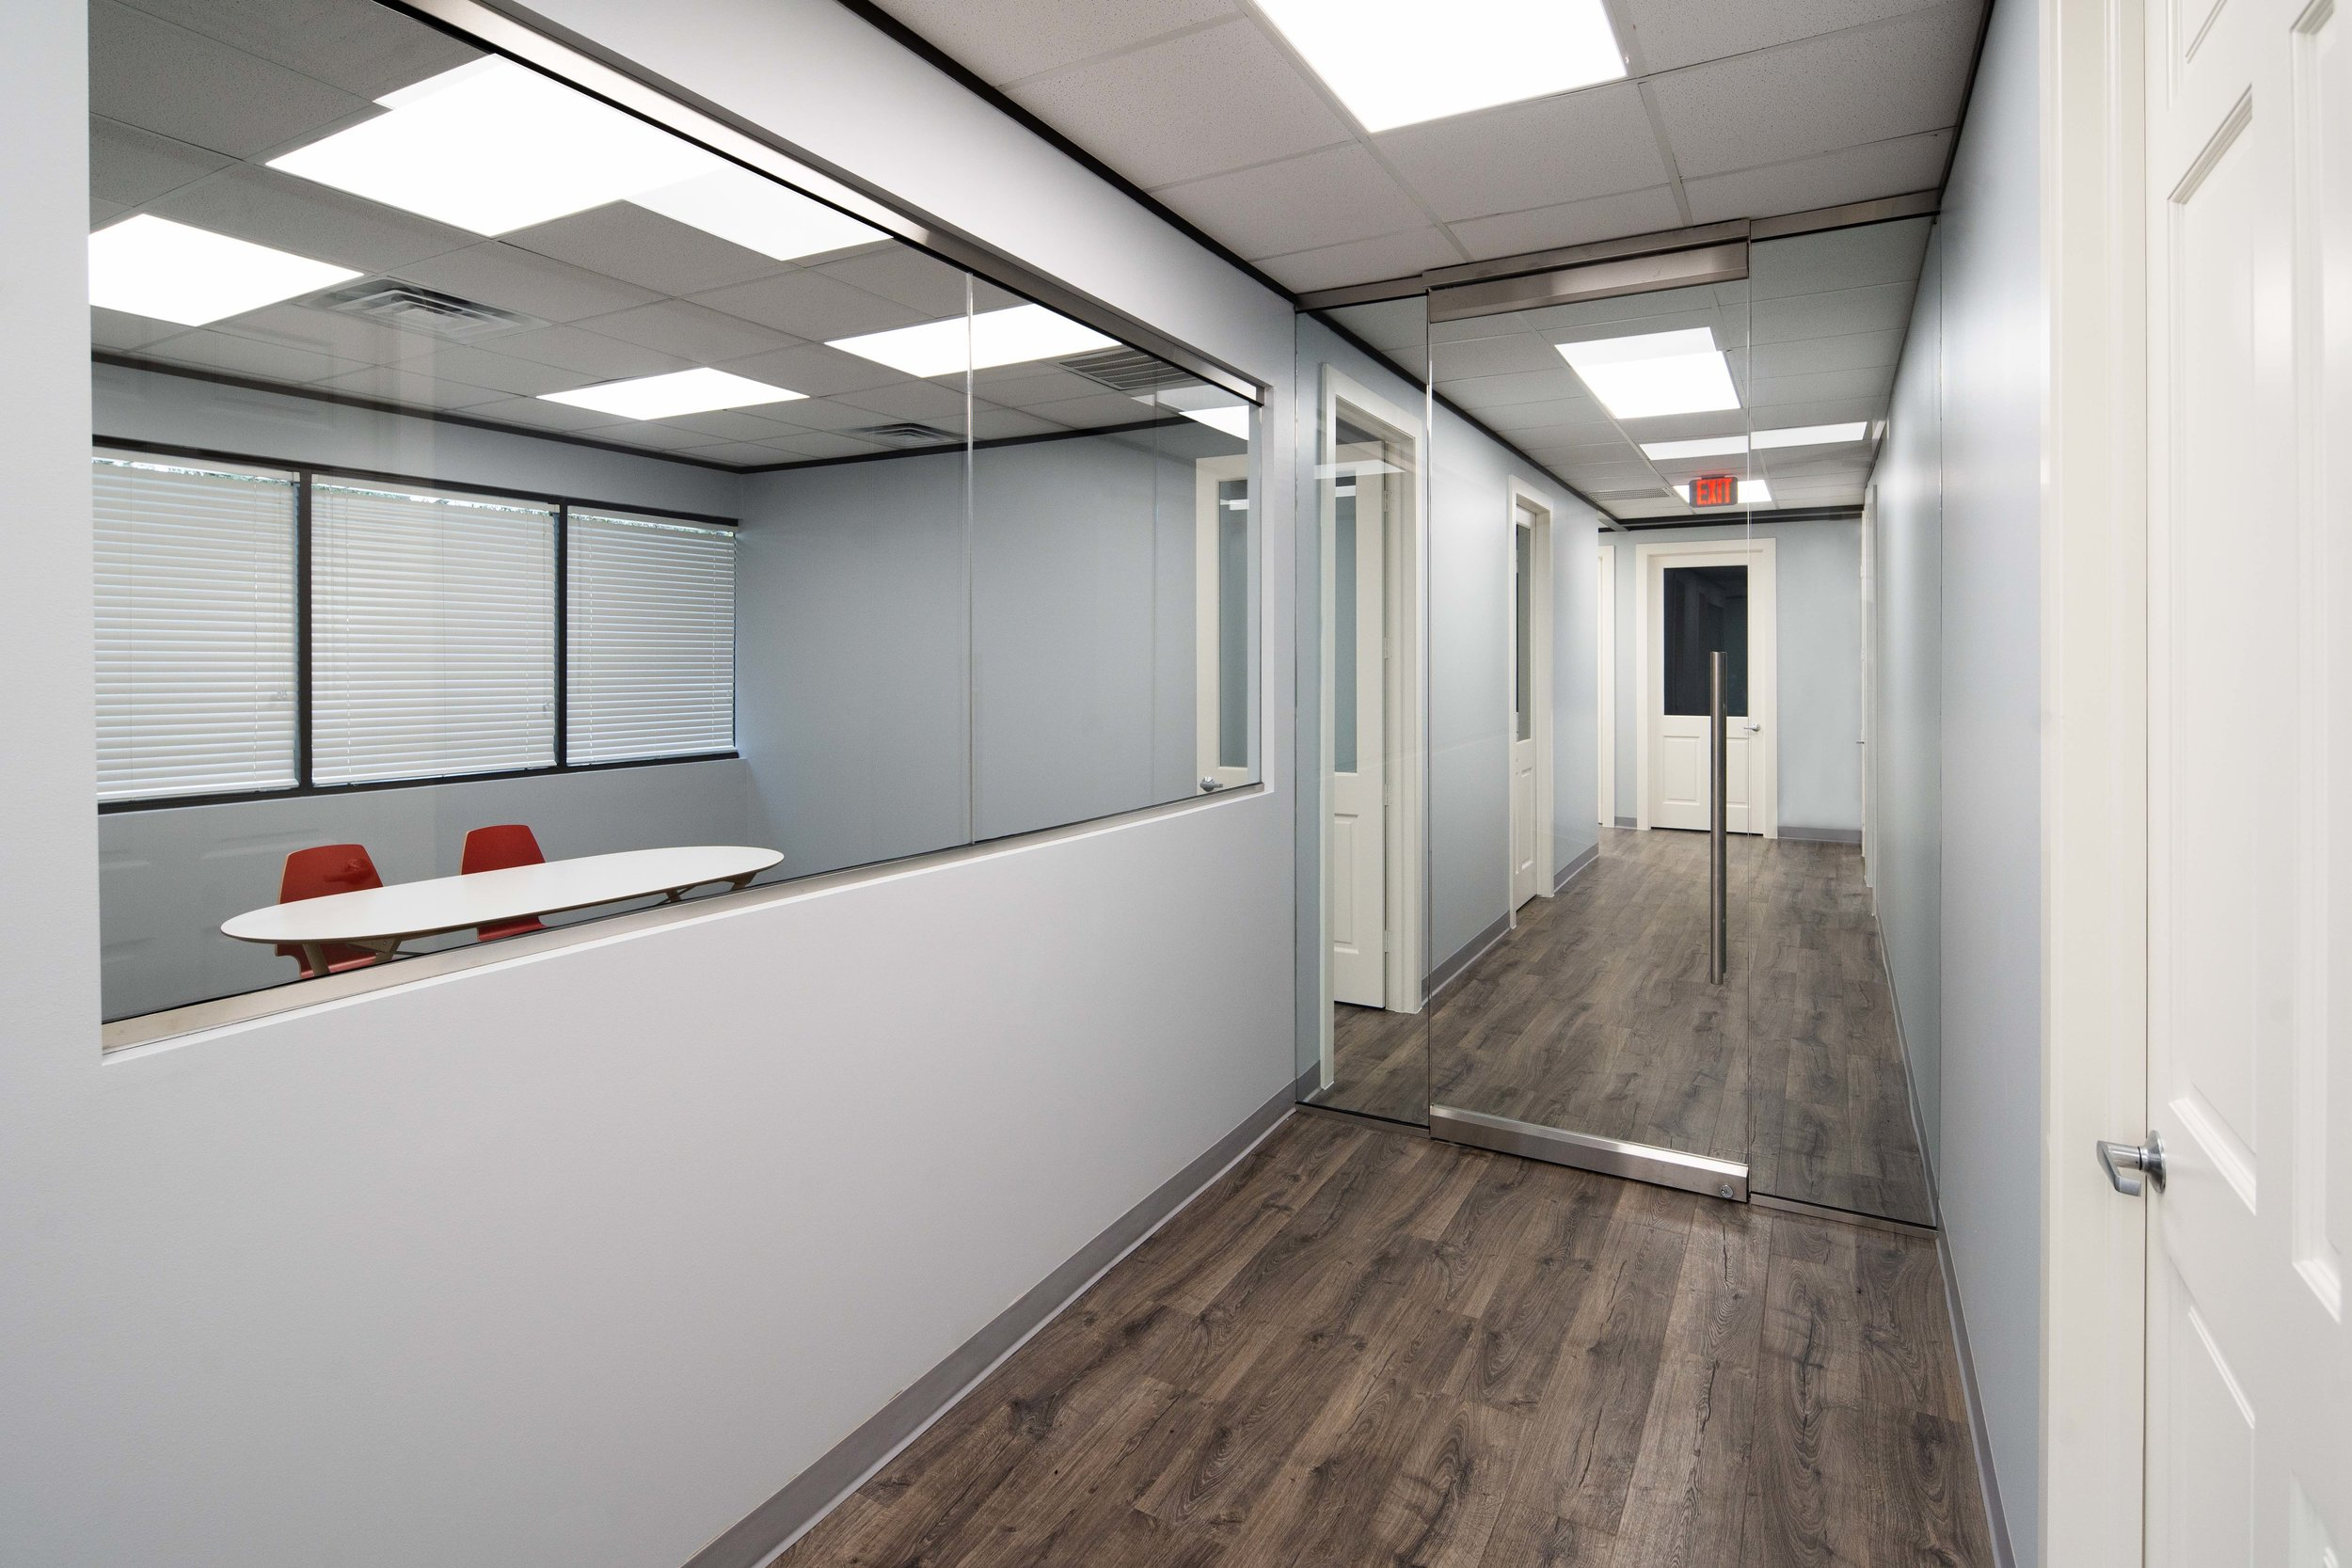 Commercial remodeling project. Beautiful frameless glass doors, wood floors, renovated bathrooms, meeting rooms, office spaces and conference rooms. This building was completely customized in order to fit the needs of this business.